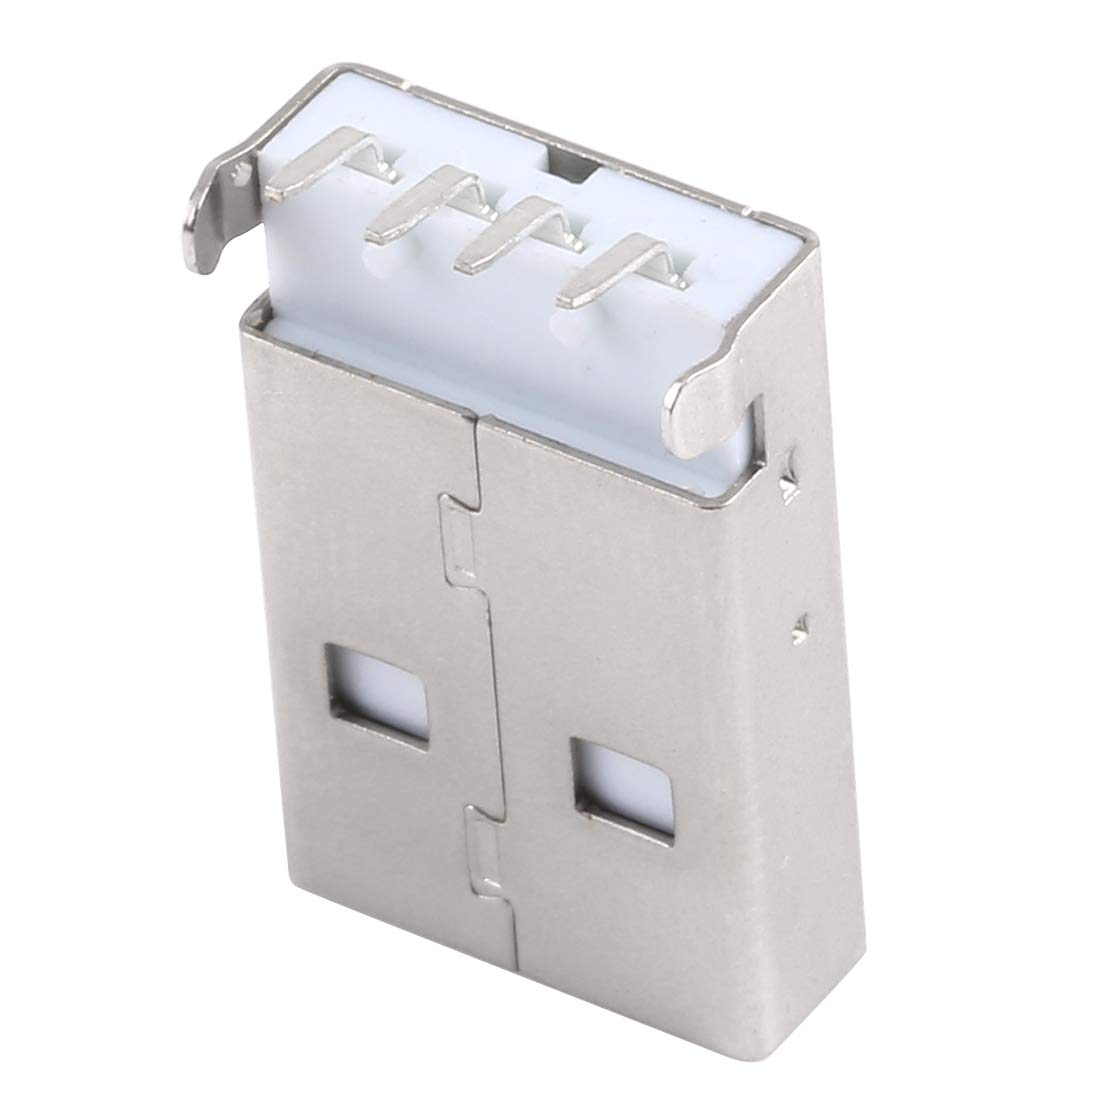 Electroplated Semi-tin 1u Iron Case IPartserve Computer Accessories JAA 50 PCS USB 2.0 AM 90 Degrees Socket Connector PBT White